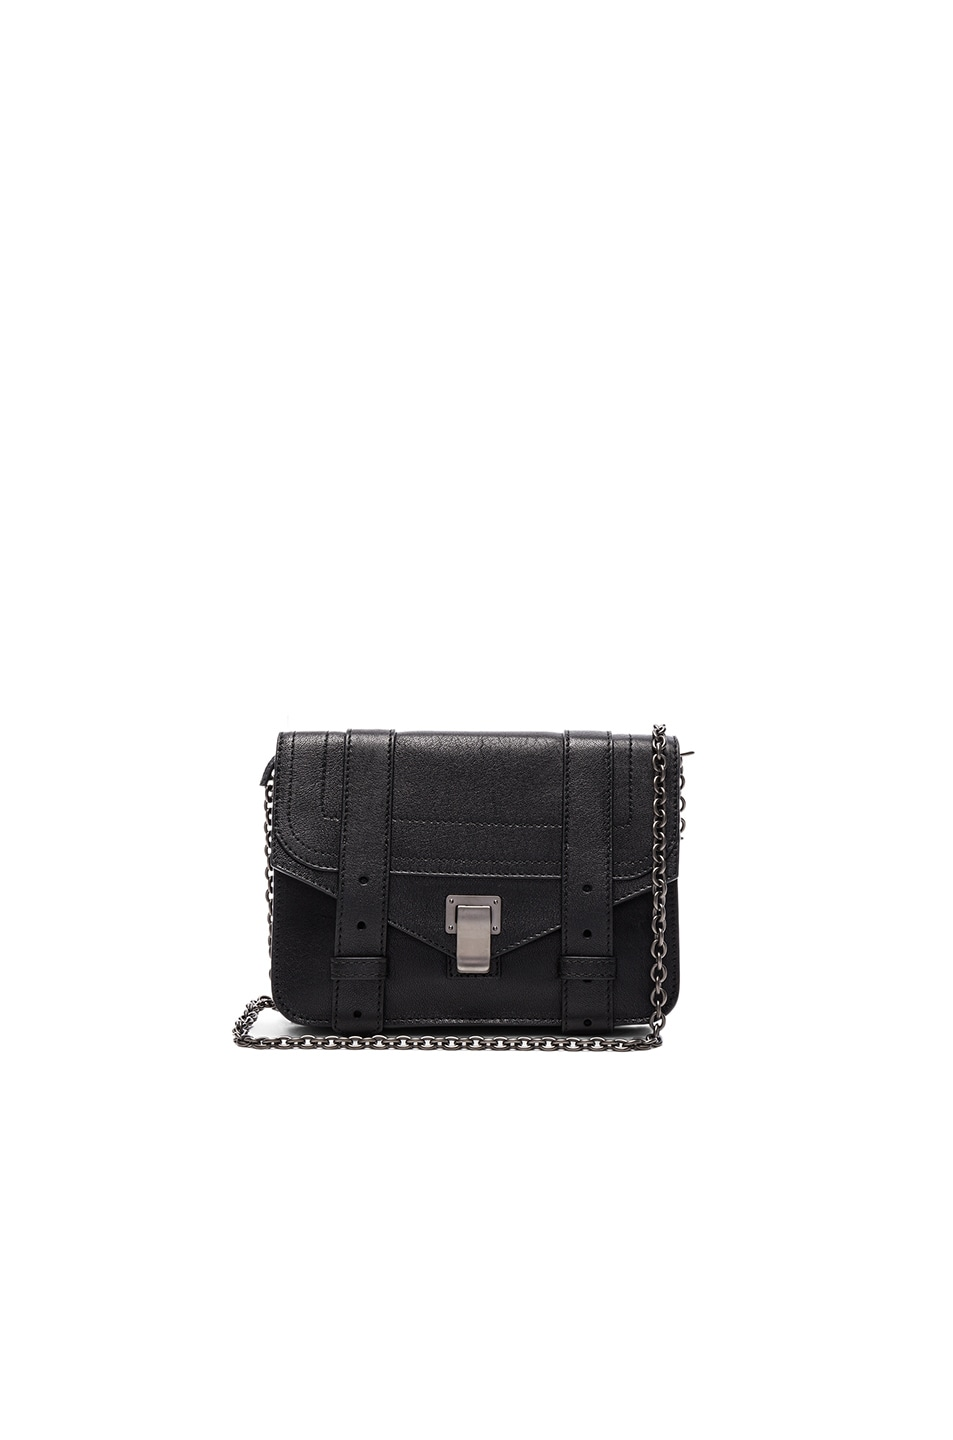 Image 1 of Proenza Schouler PS1 New Chain Wallet Lux Leather in Black